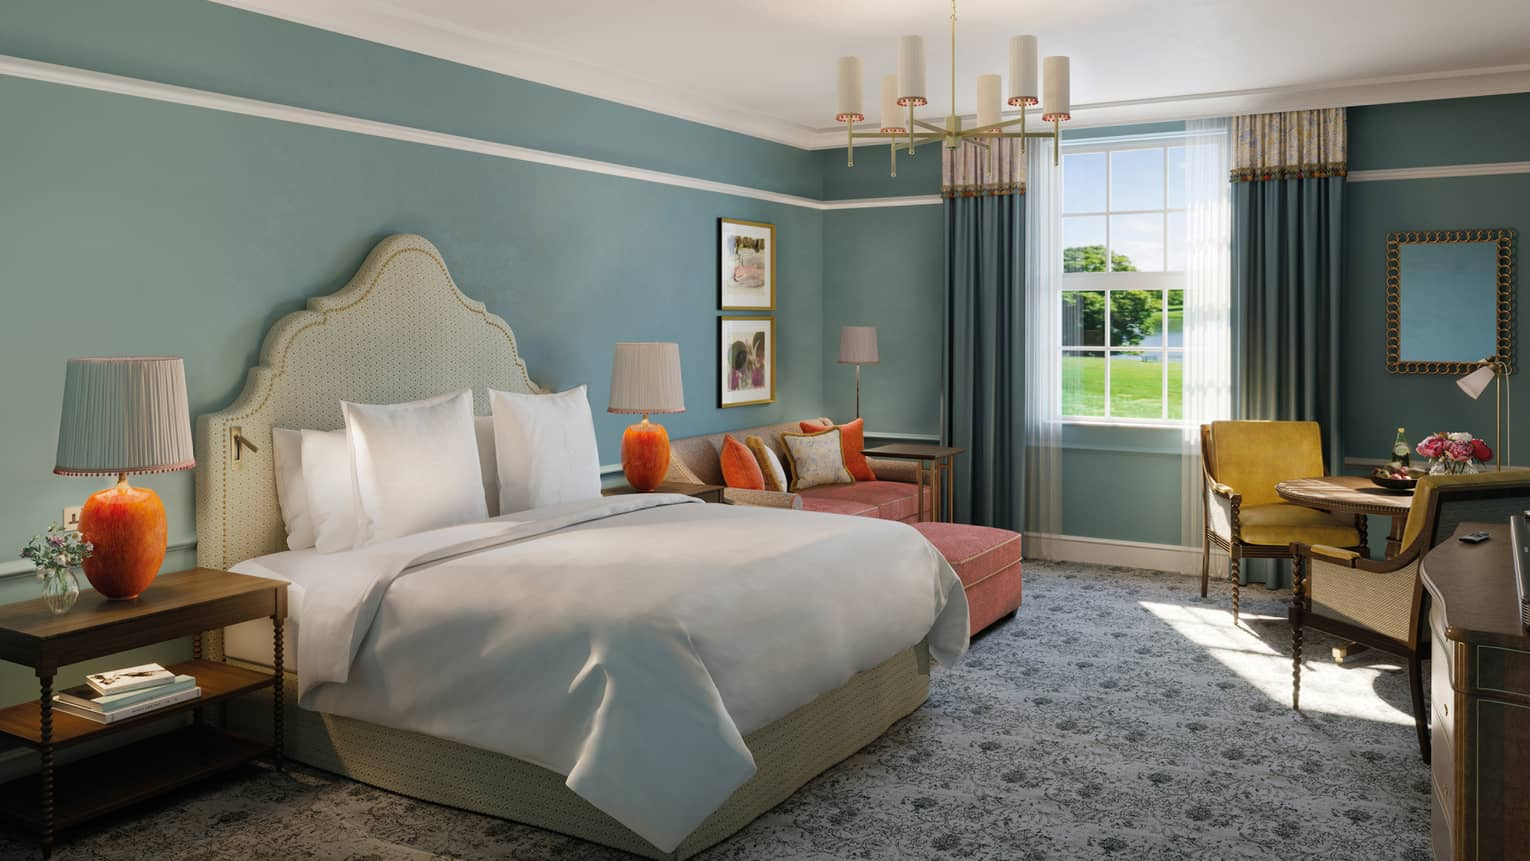 Guest room with beige fabric headboard and white linens, dusty blue walls, orange and yellow accent décor